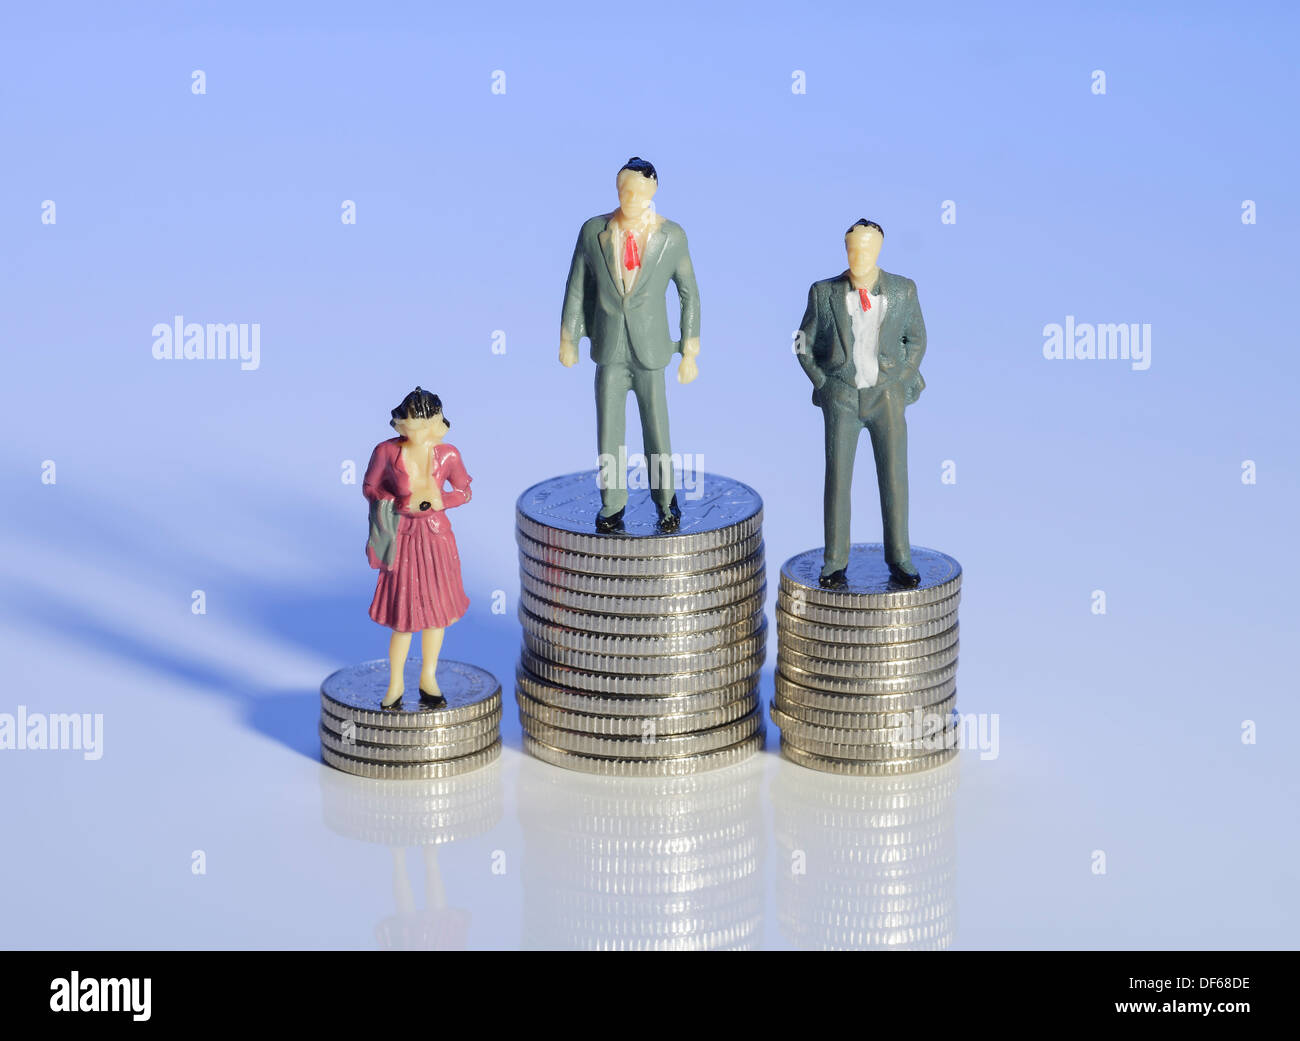 Mini plastic men and a woman standing on piles of money - Stock Image